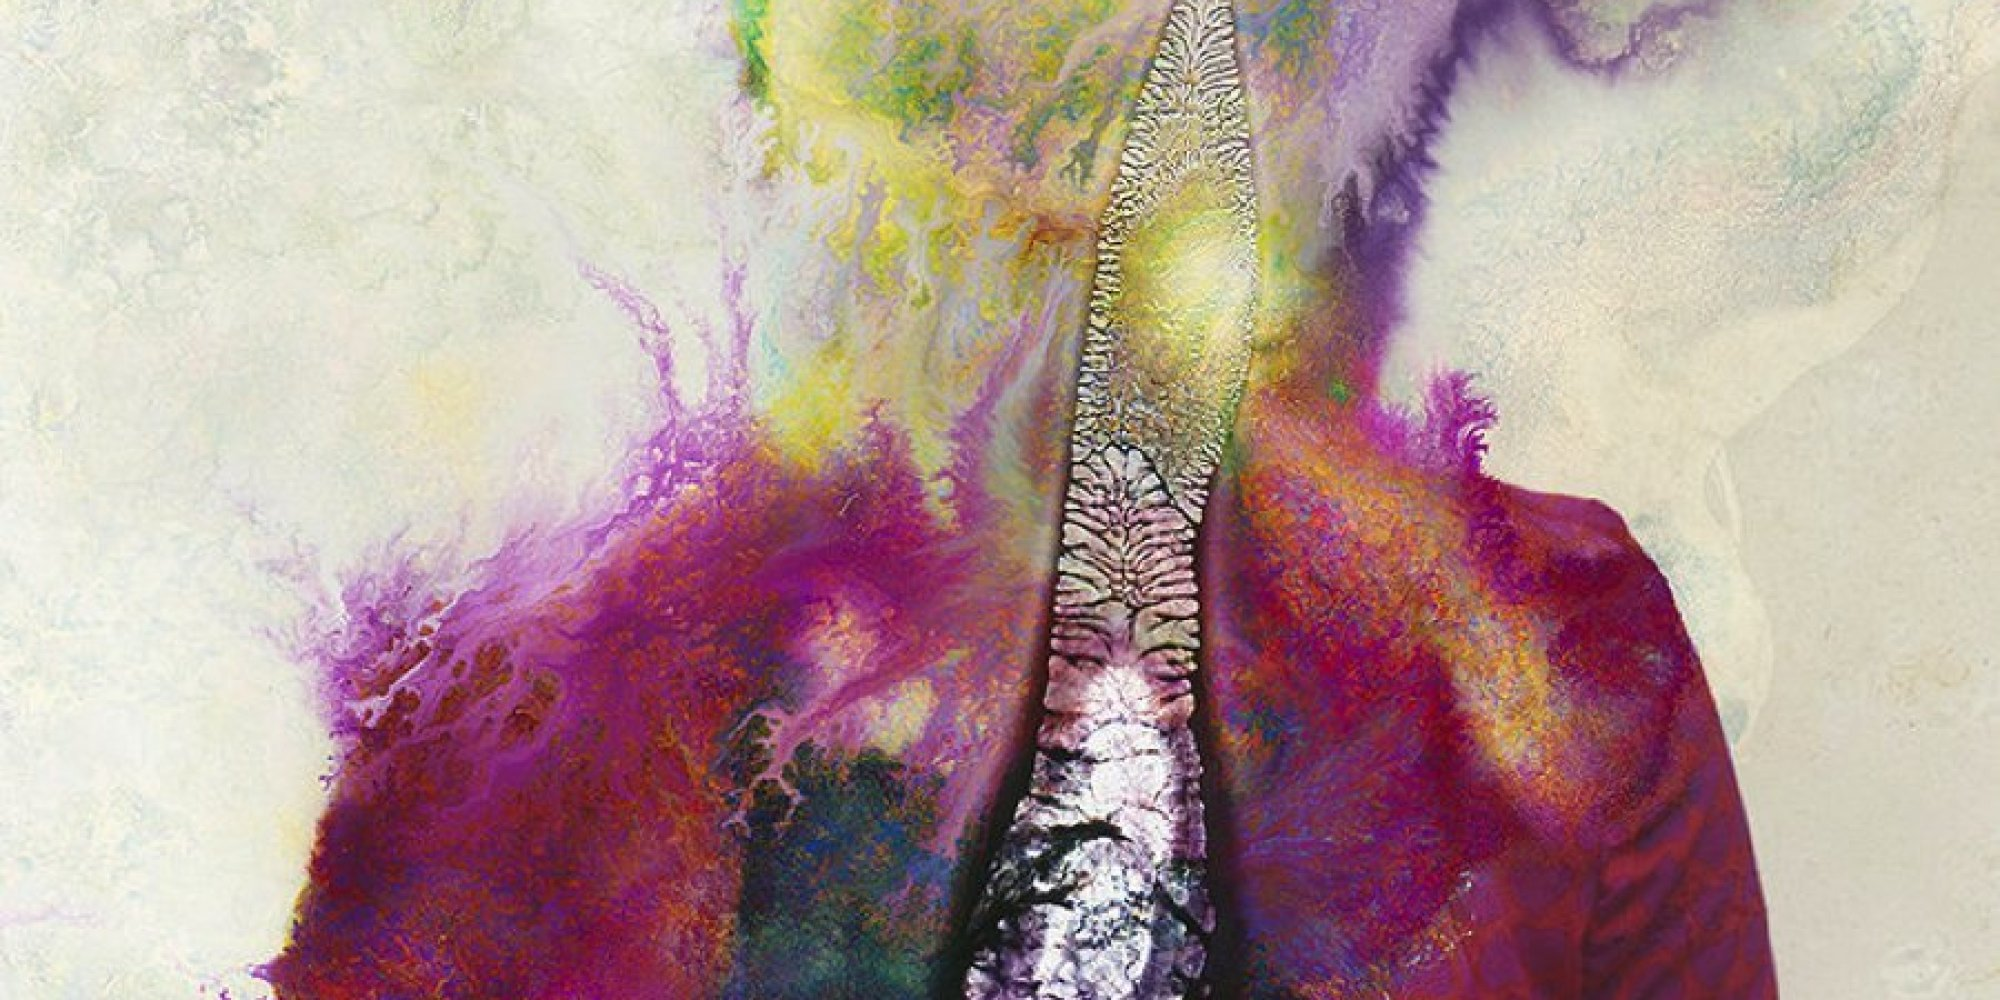 Adding Bacteria To Photography Amounts To An Art-Meets-Science Explosion